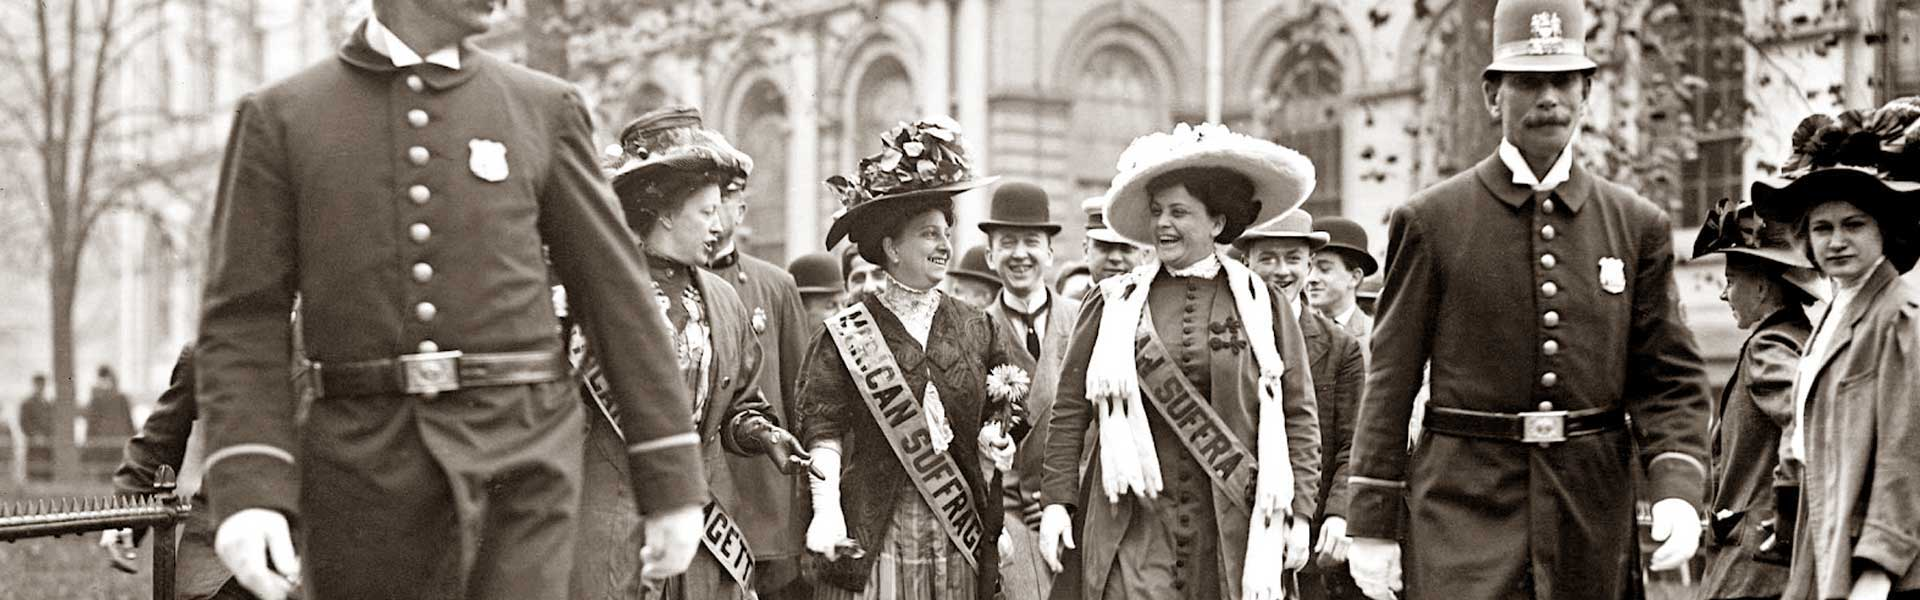 Suffragettes leaving New York City Hall, 1908